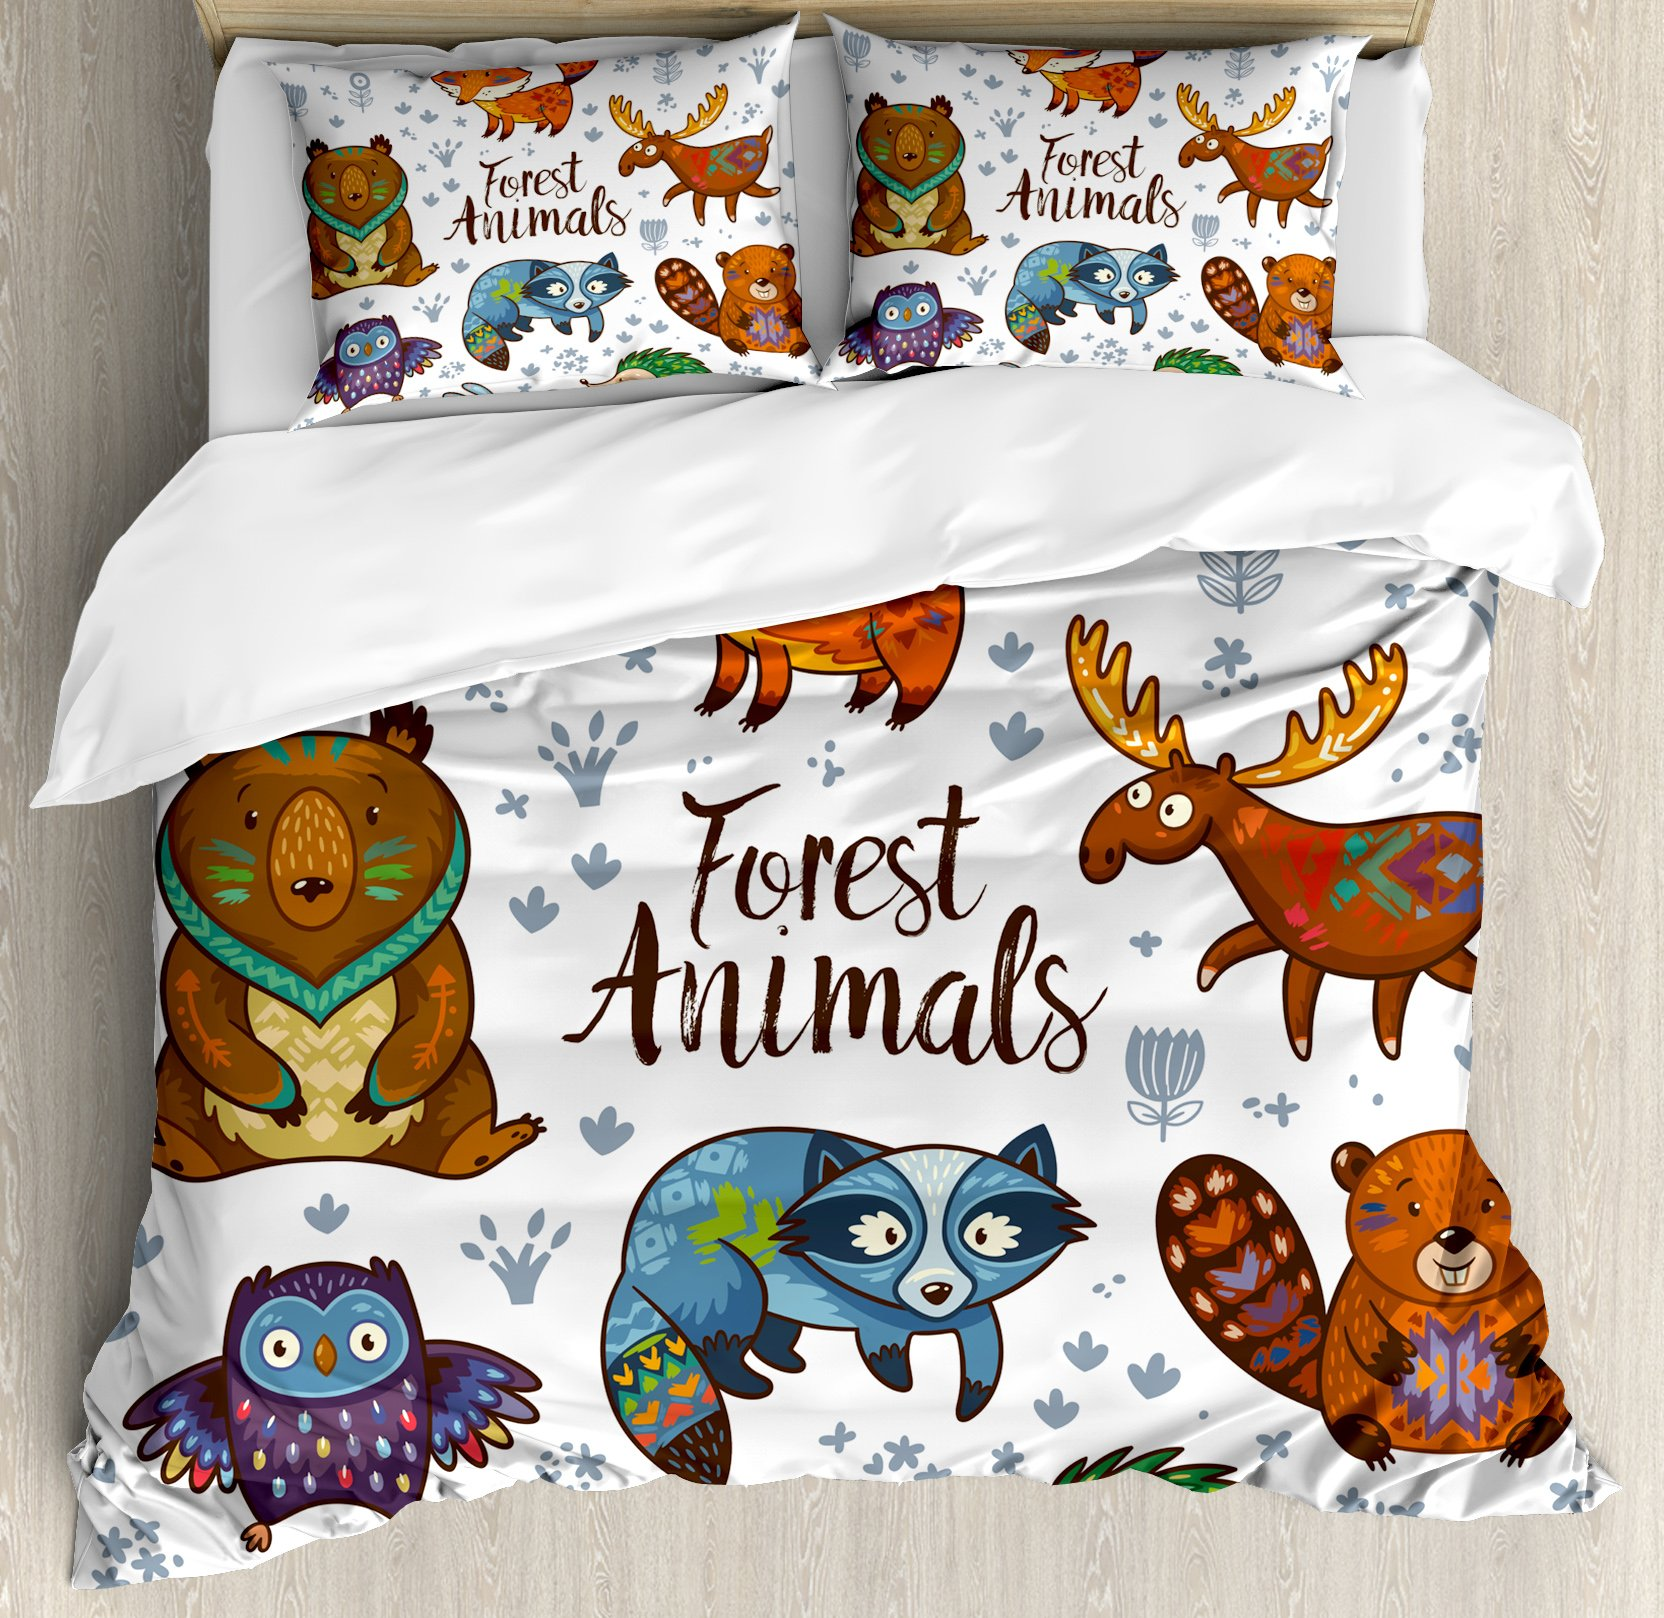 Cabin Decor King Size Duvet Cover Set by Ambesonne, Set of Cute Woodland Animals Tribal Nature Elements Kids Room Nursery Wall Art, Decorative 3 Piece Bedding Set with 2 Pillow Shams, Multicolor